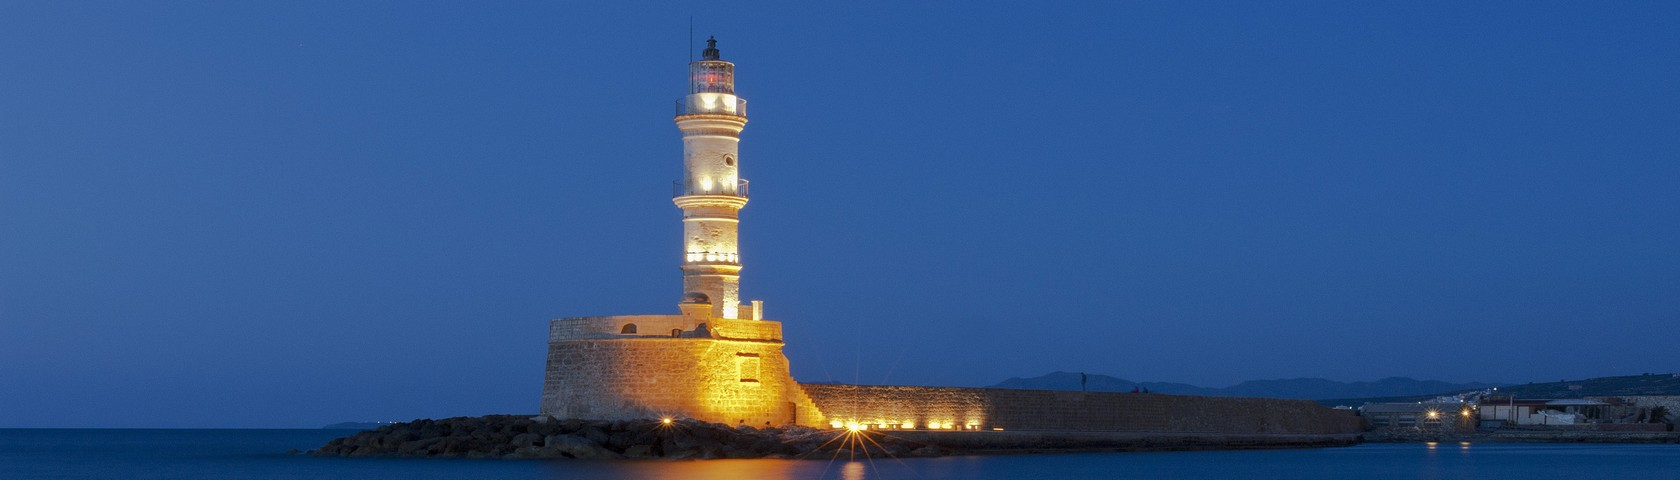 CHANIA_LIGHTHOUSE_040